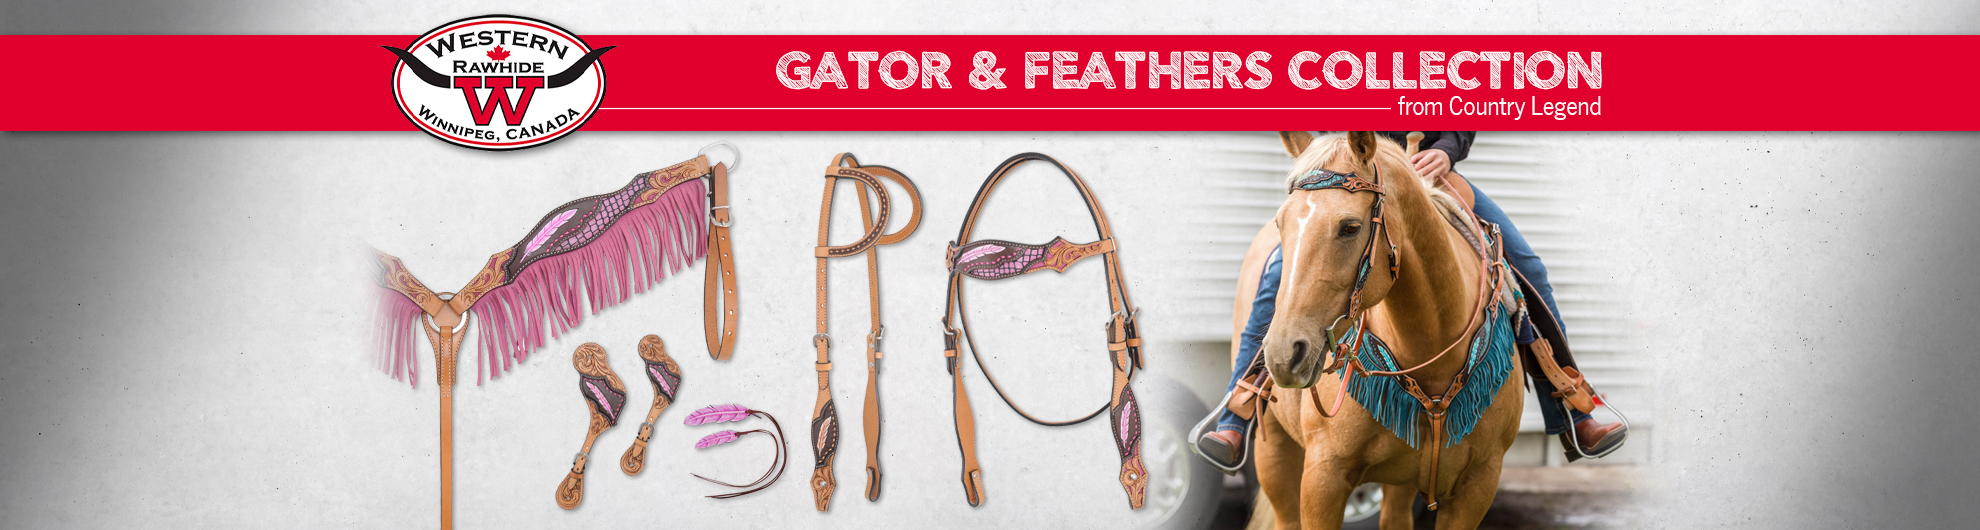 Gator & Feathers Collection from Country Legend